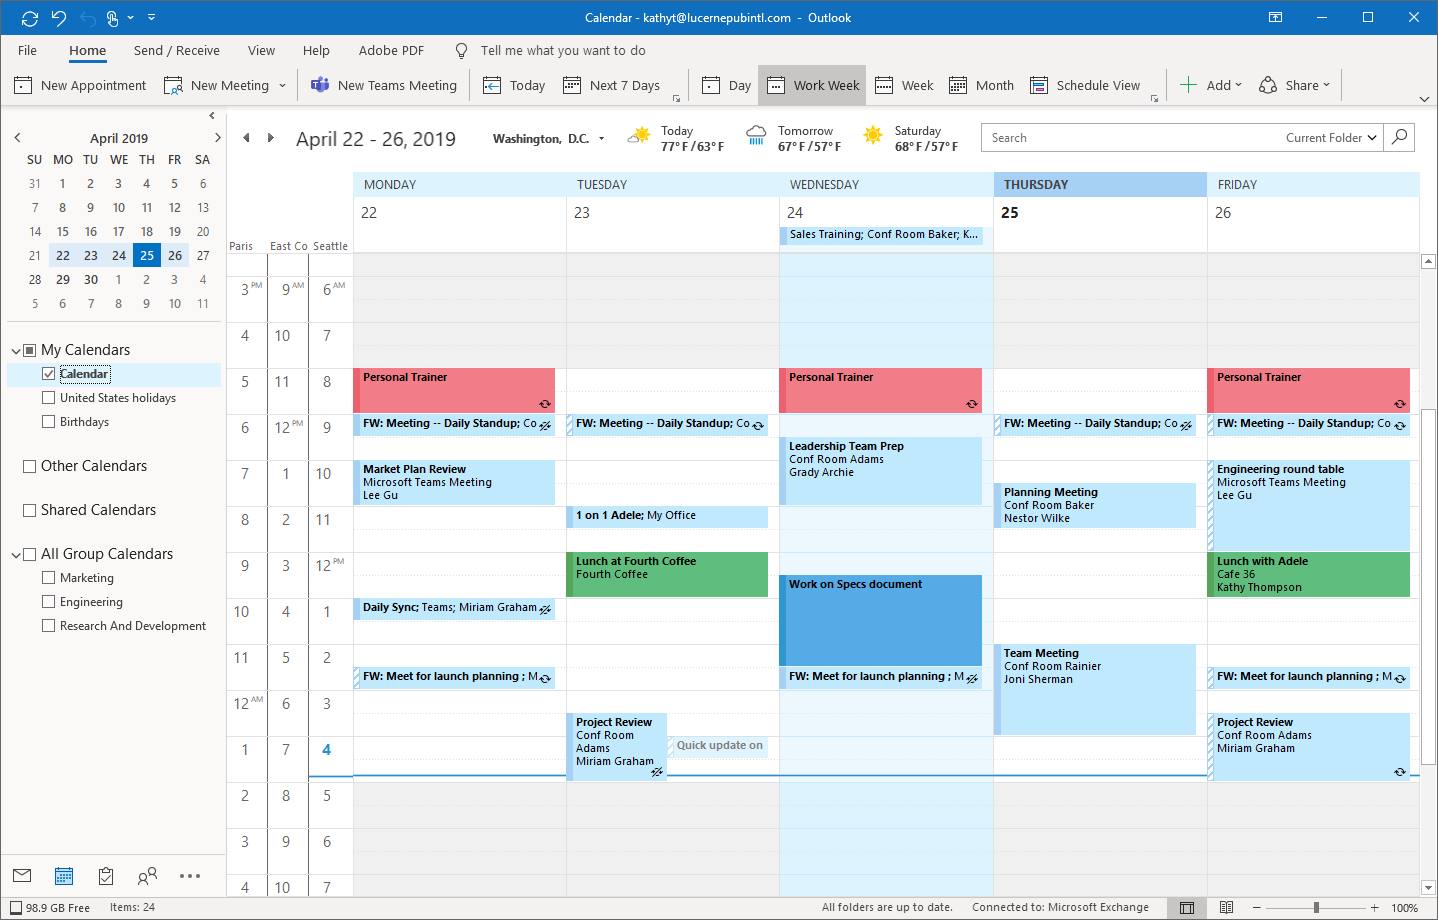 Microsoft Outlook's Calendar gets a refurnished interface with new features